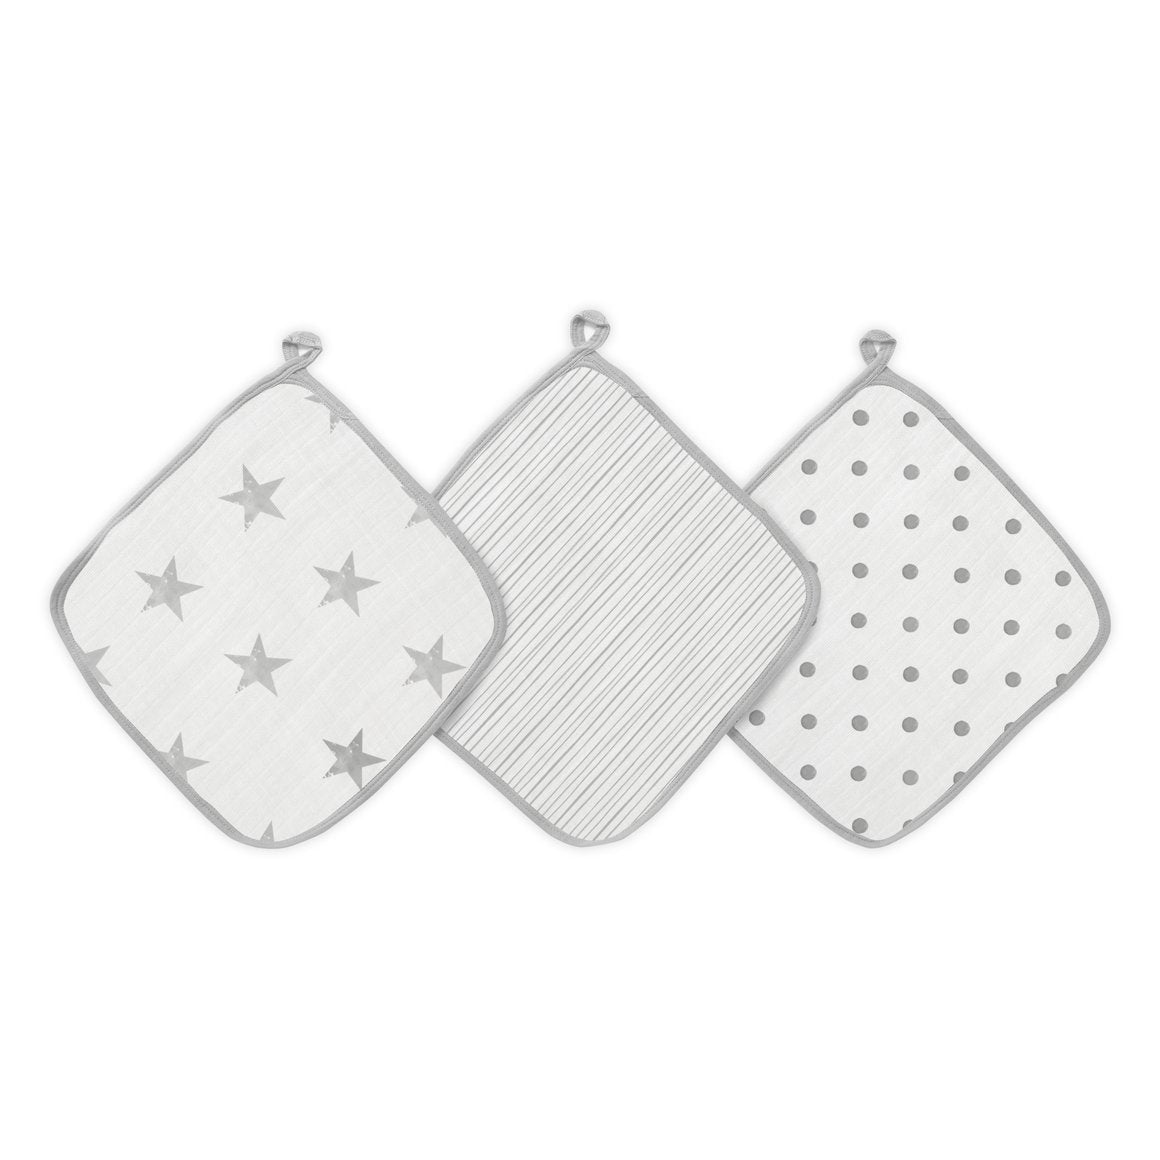 Dusty Wash Cloths (3 Pack)